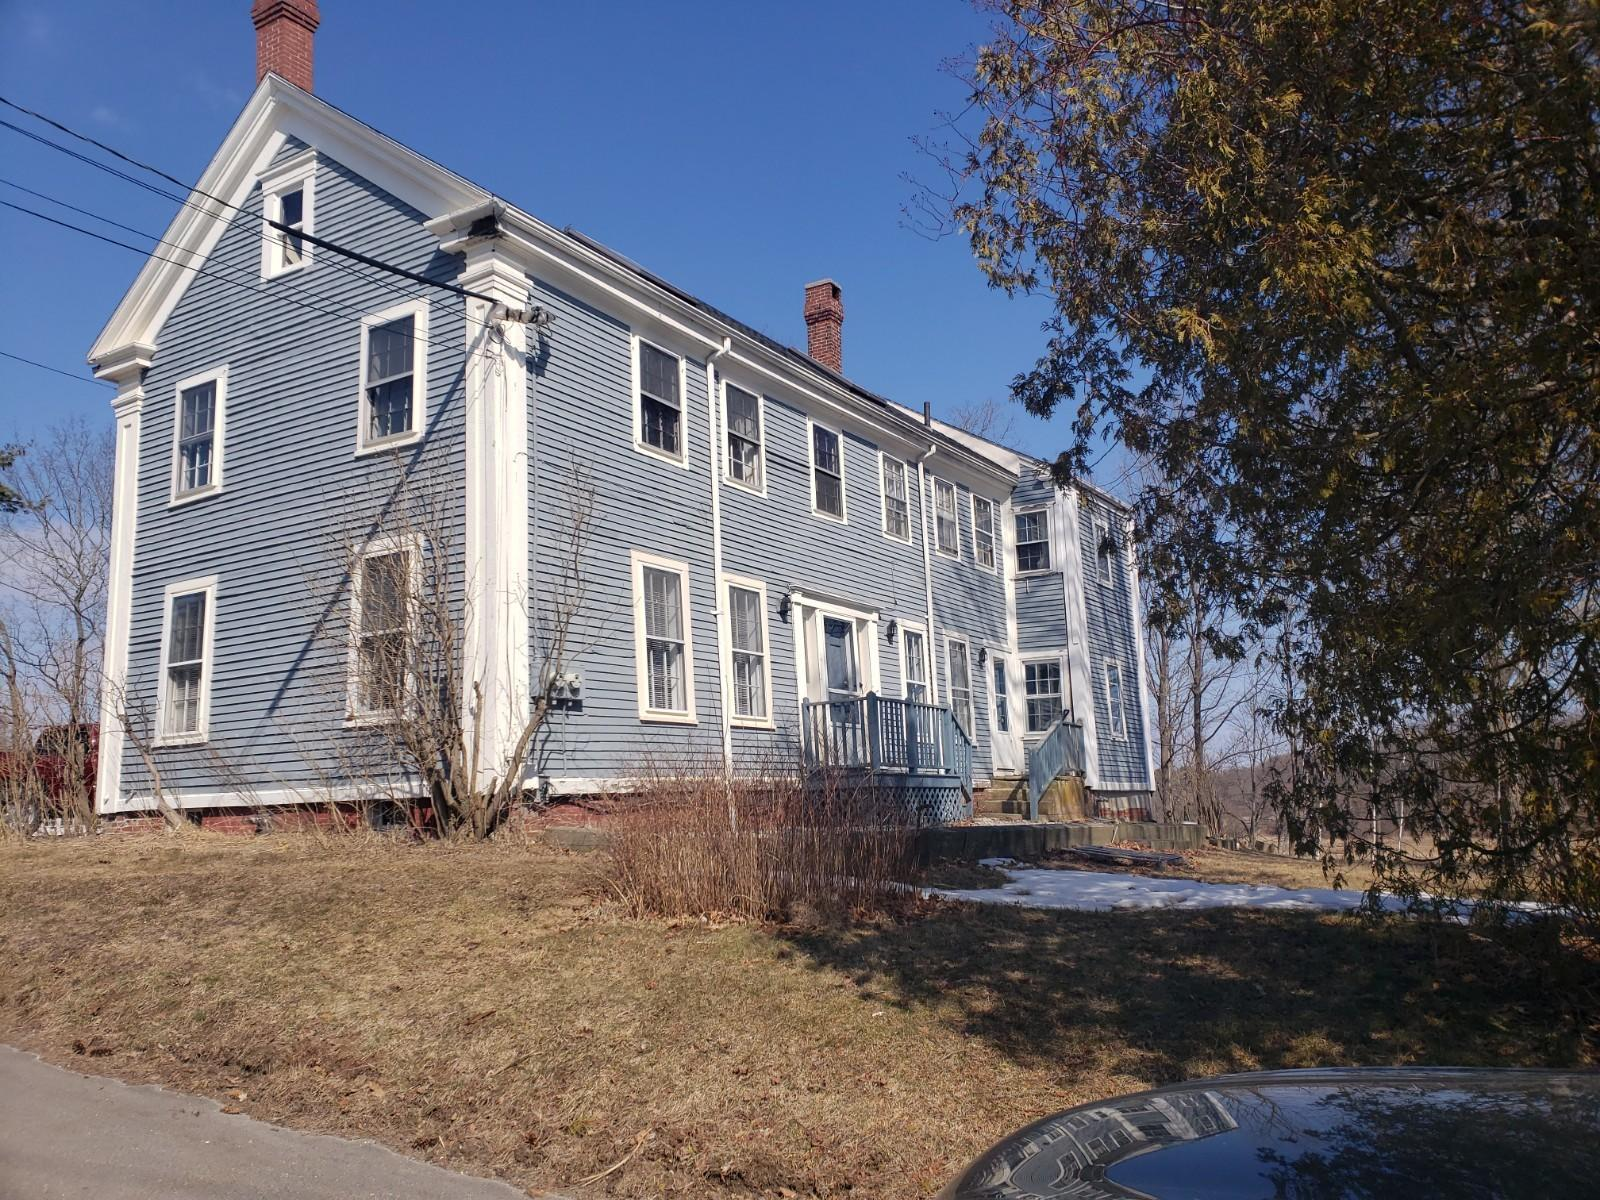 Main image for MLS listing 1485140